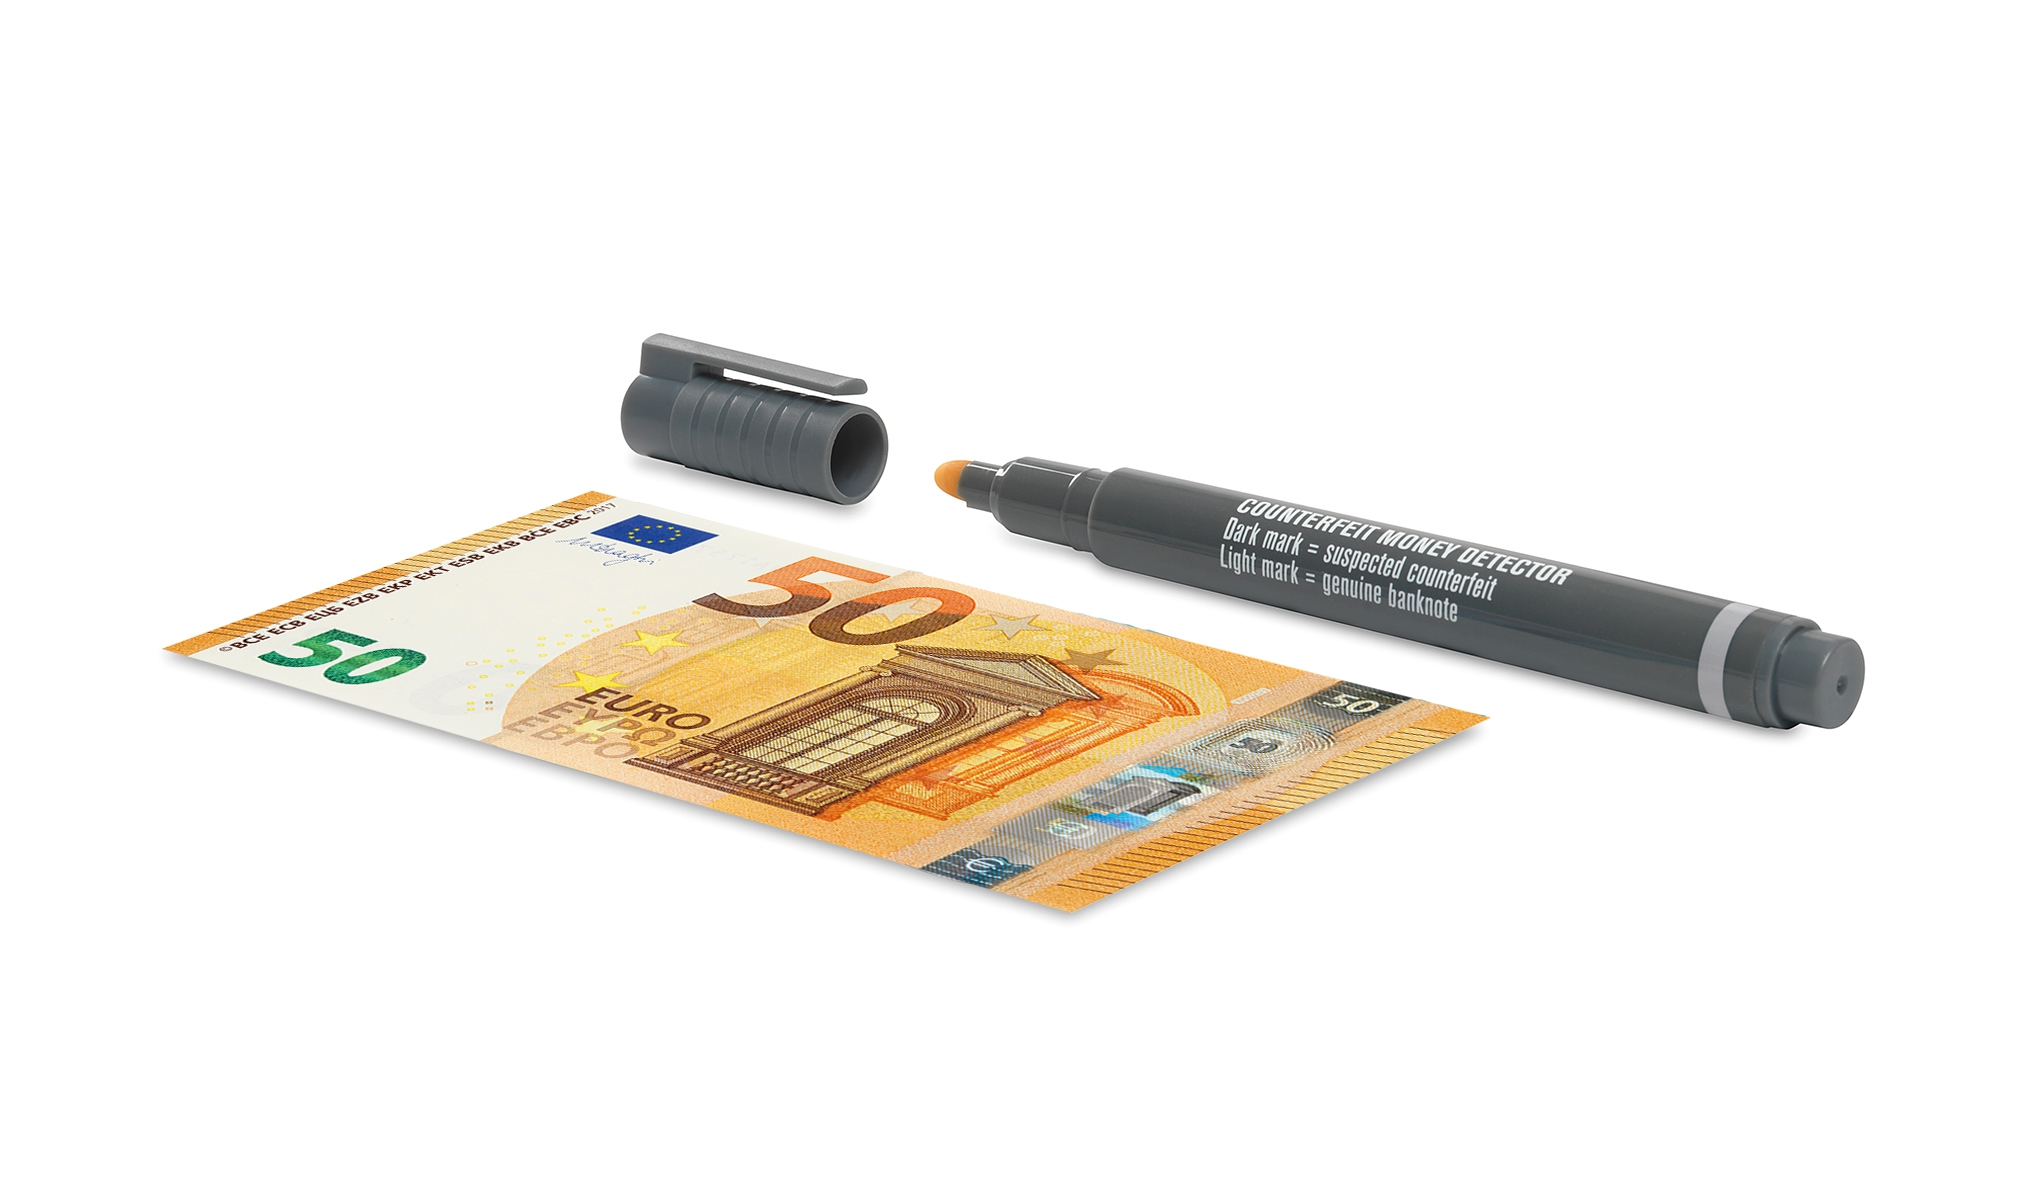 safescan-30-counterfeit-pen